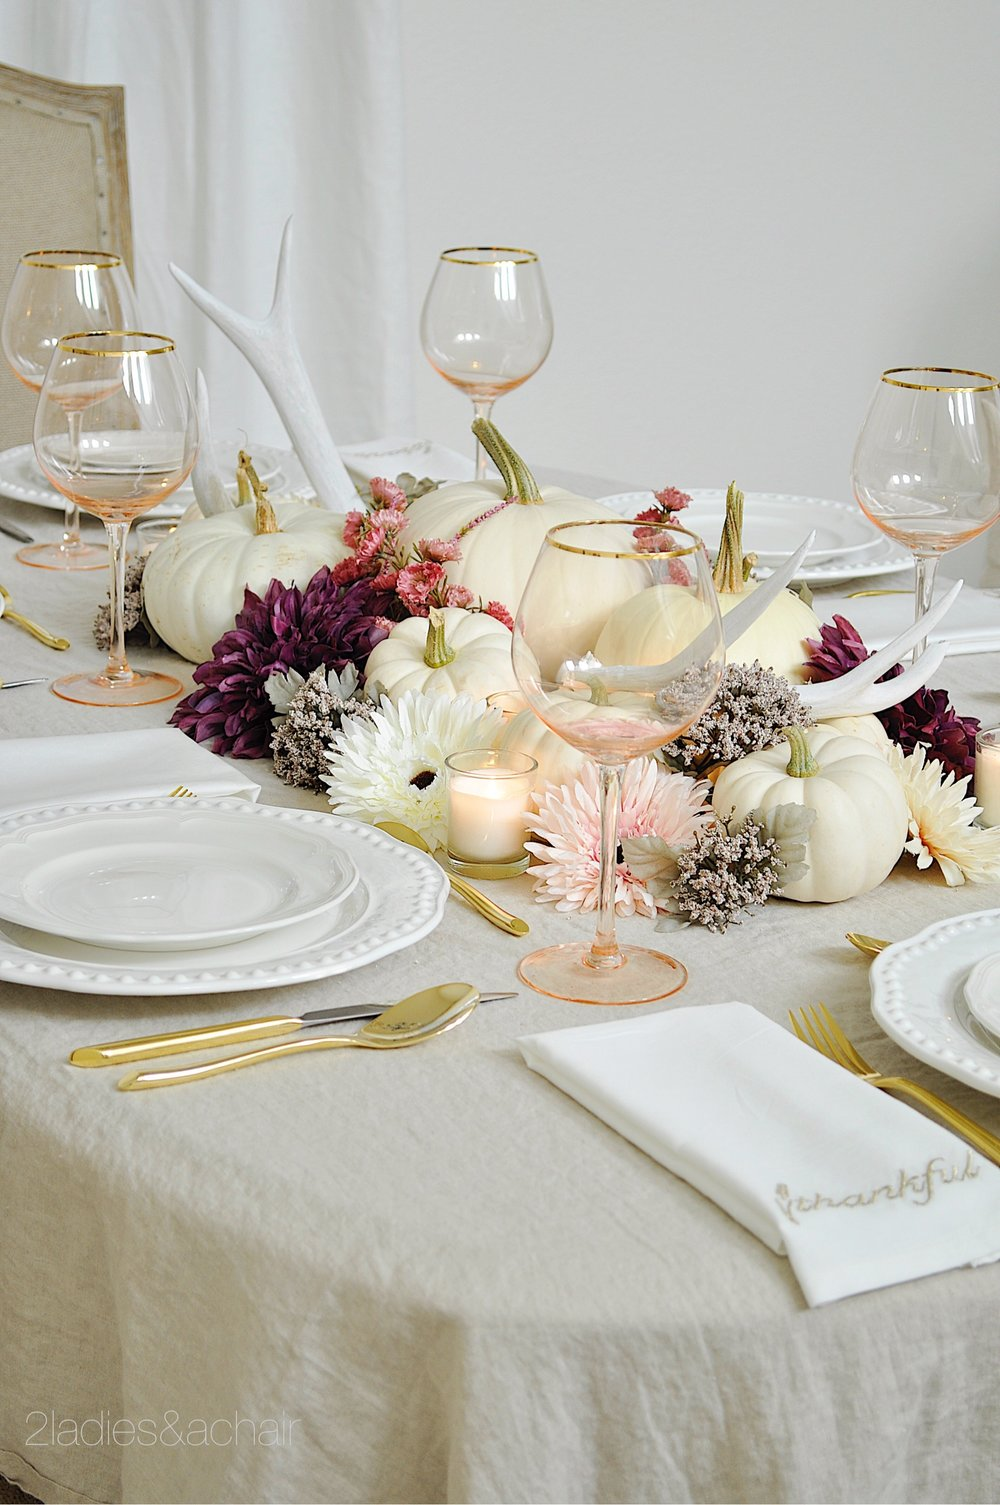 thanksgiving table IMG_8443.JPG